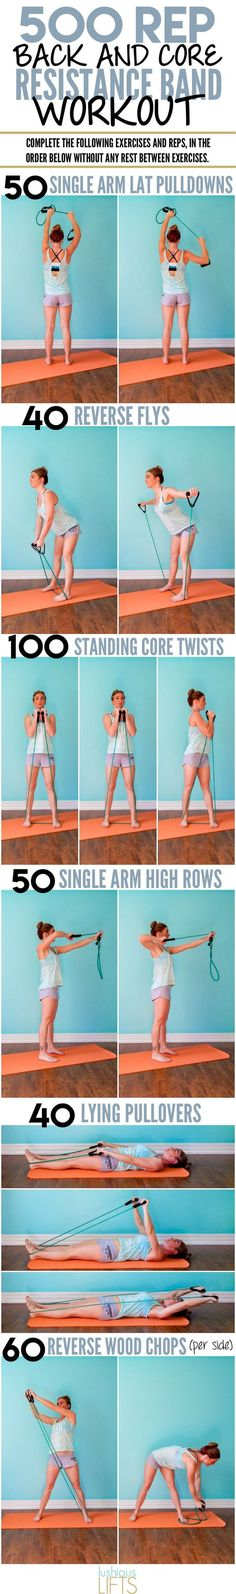 500 rep back and core resistance band workout - Fitness Fitness Workouts, Fun Fitness, Lower Ab Workouts, Sport Fitness, Pilates Workout, Fitness Diet, At Home Workouts, Fitness Motivation, Health Fitness